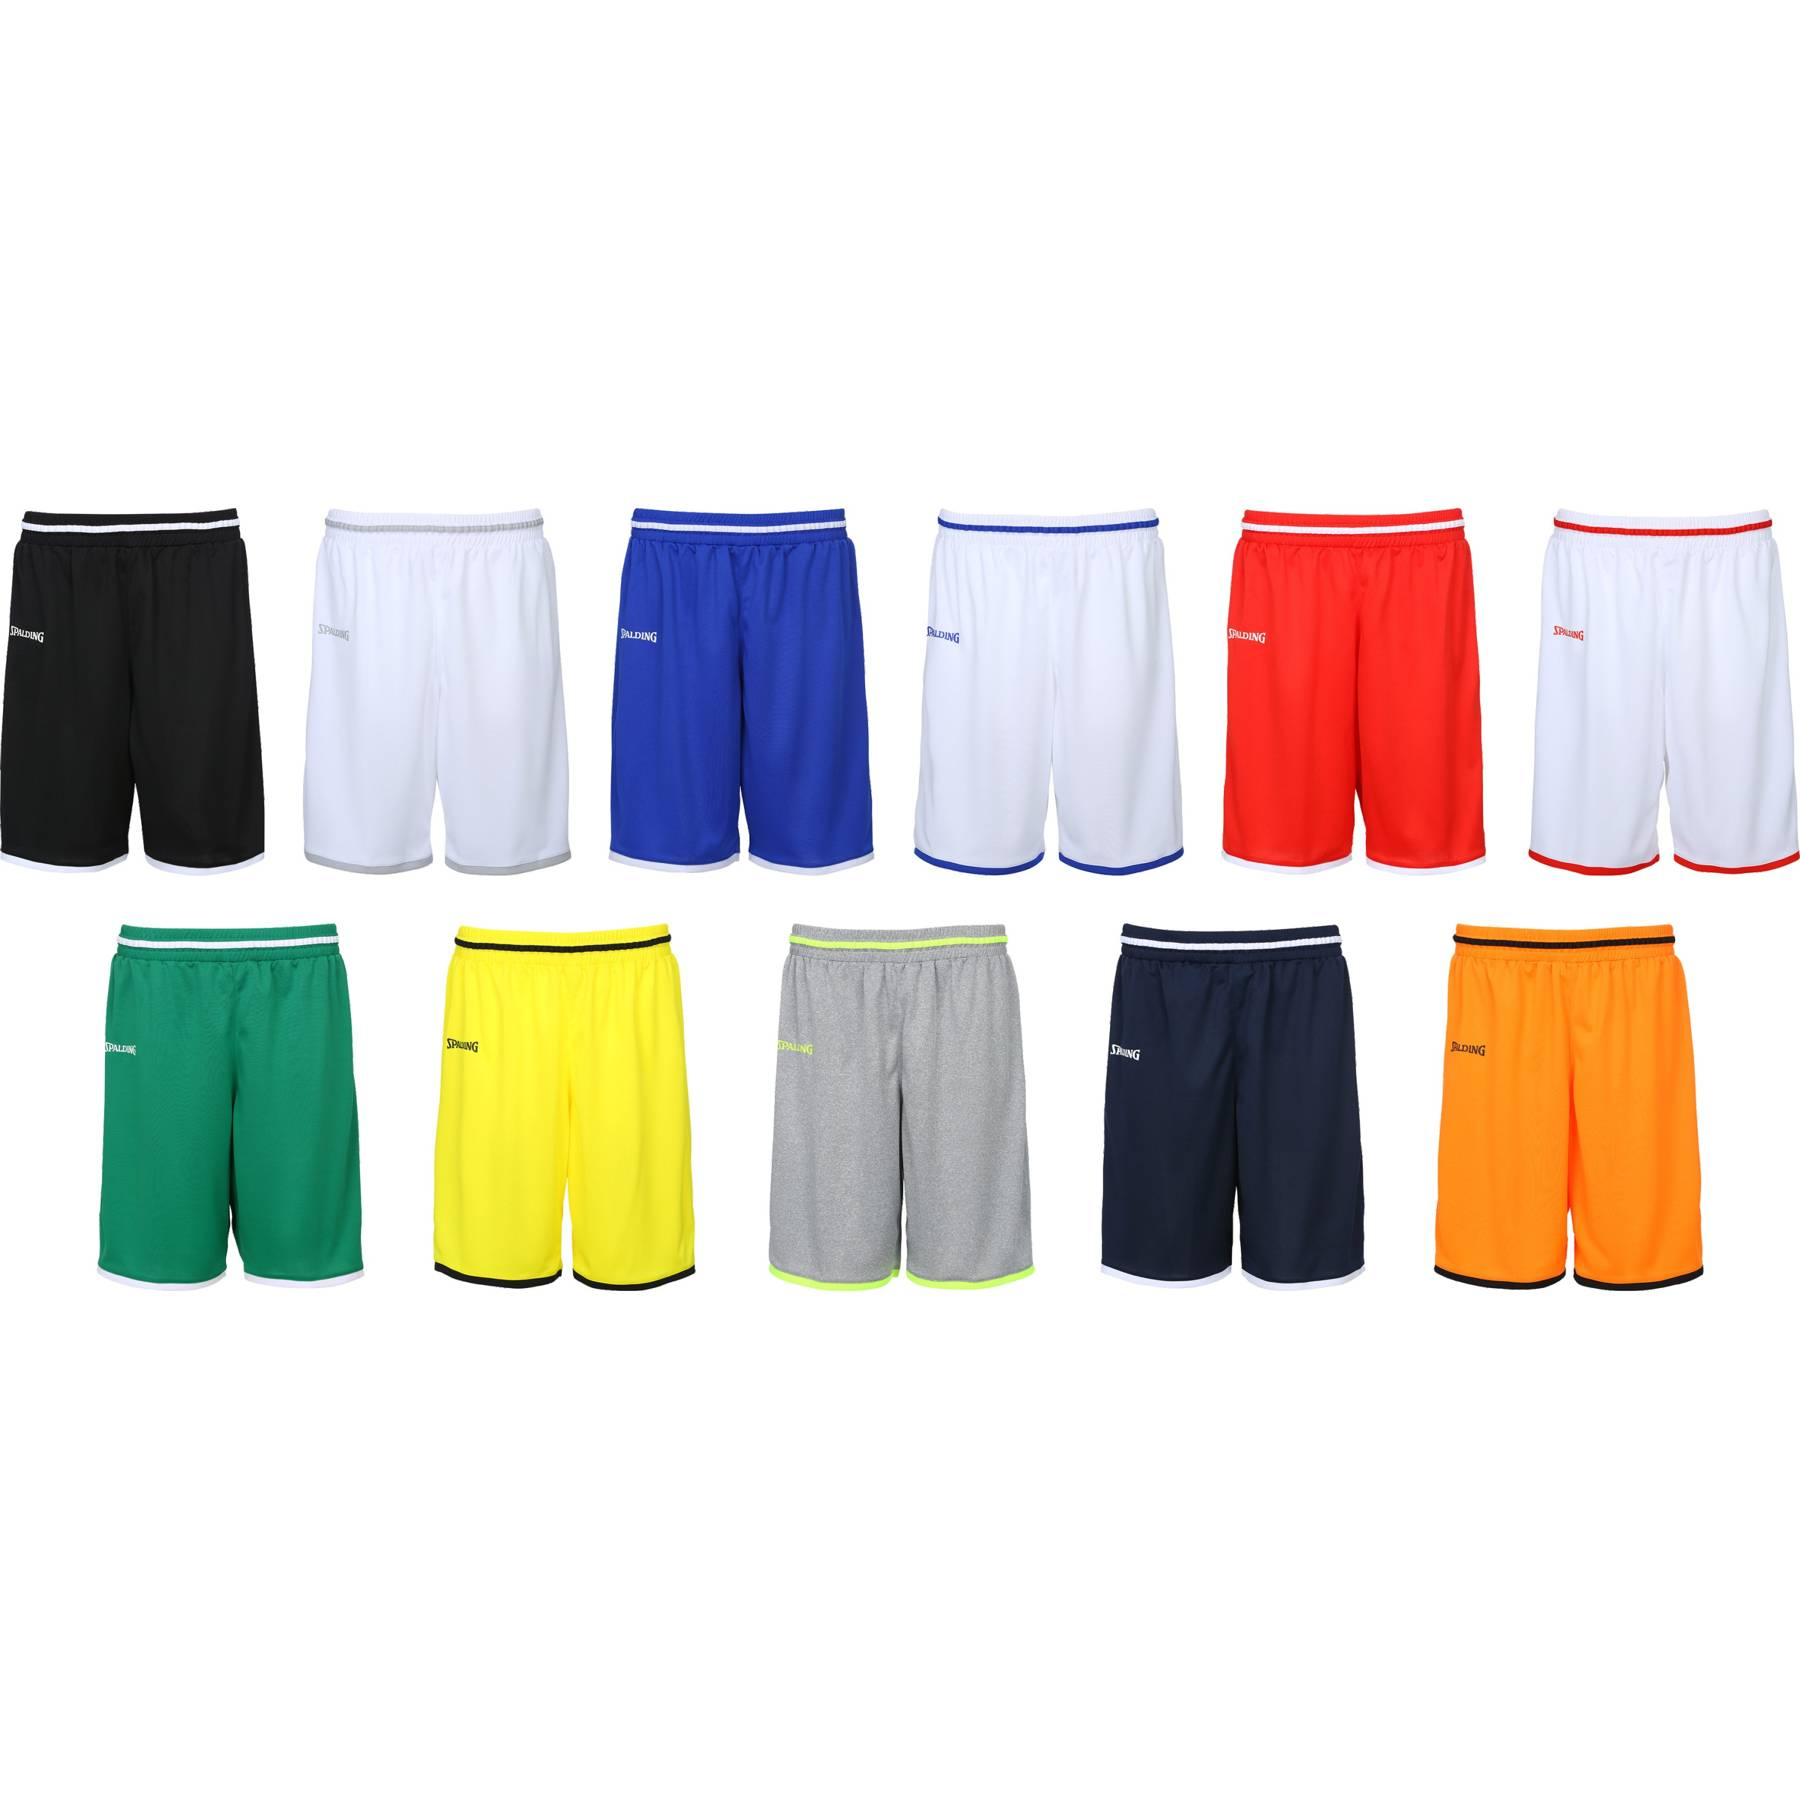 Teamwear - Spalding Men's Move Shorts